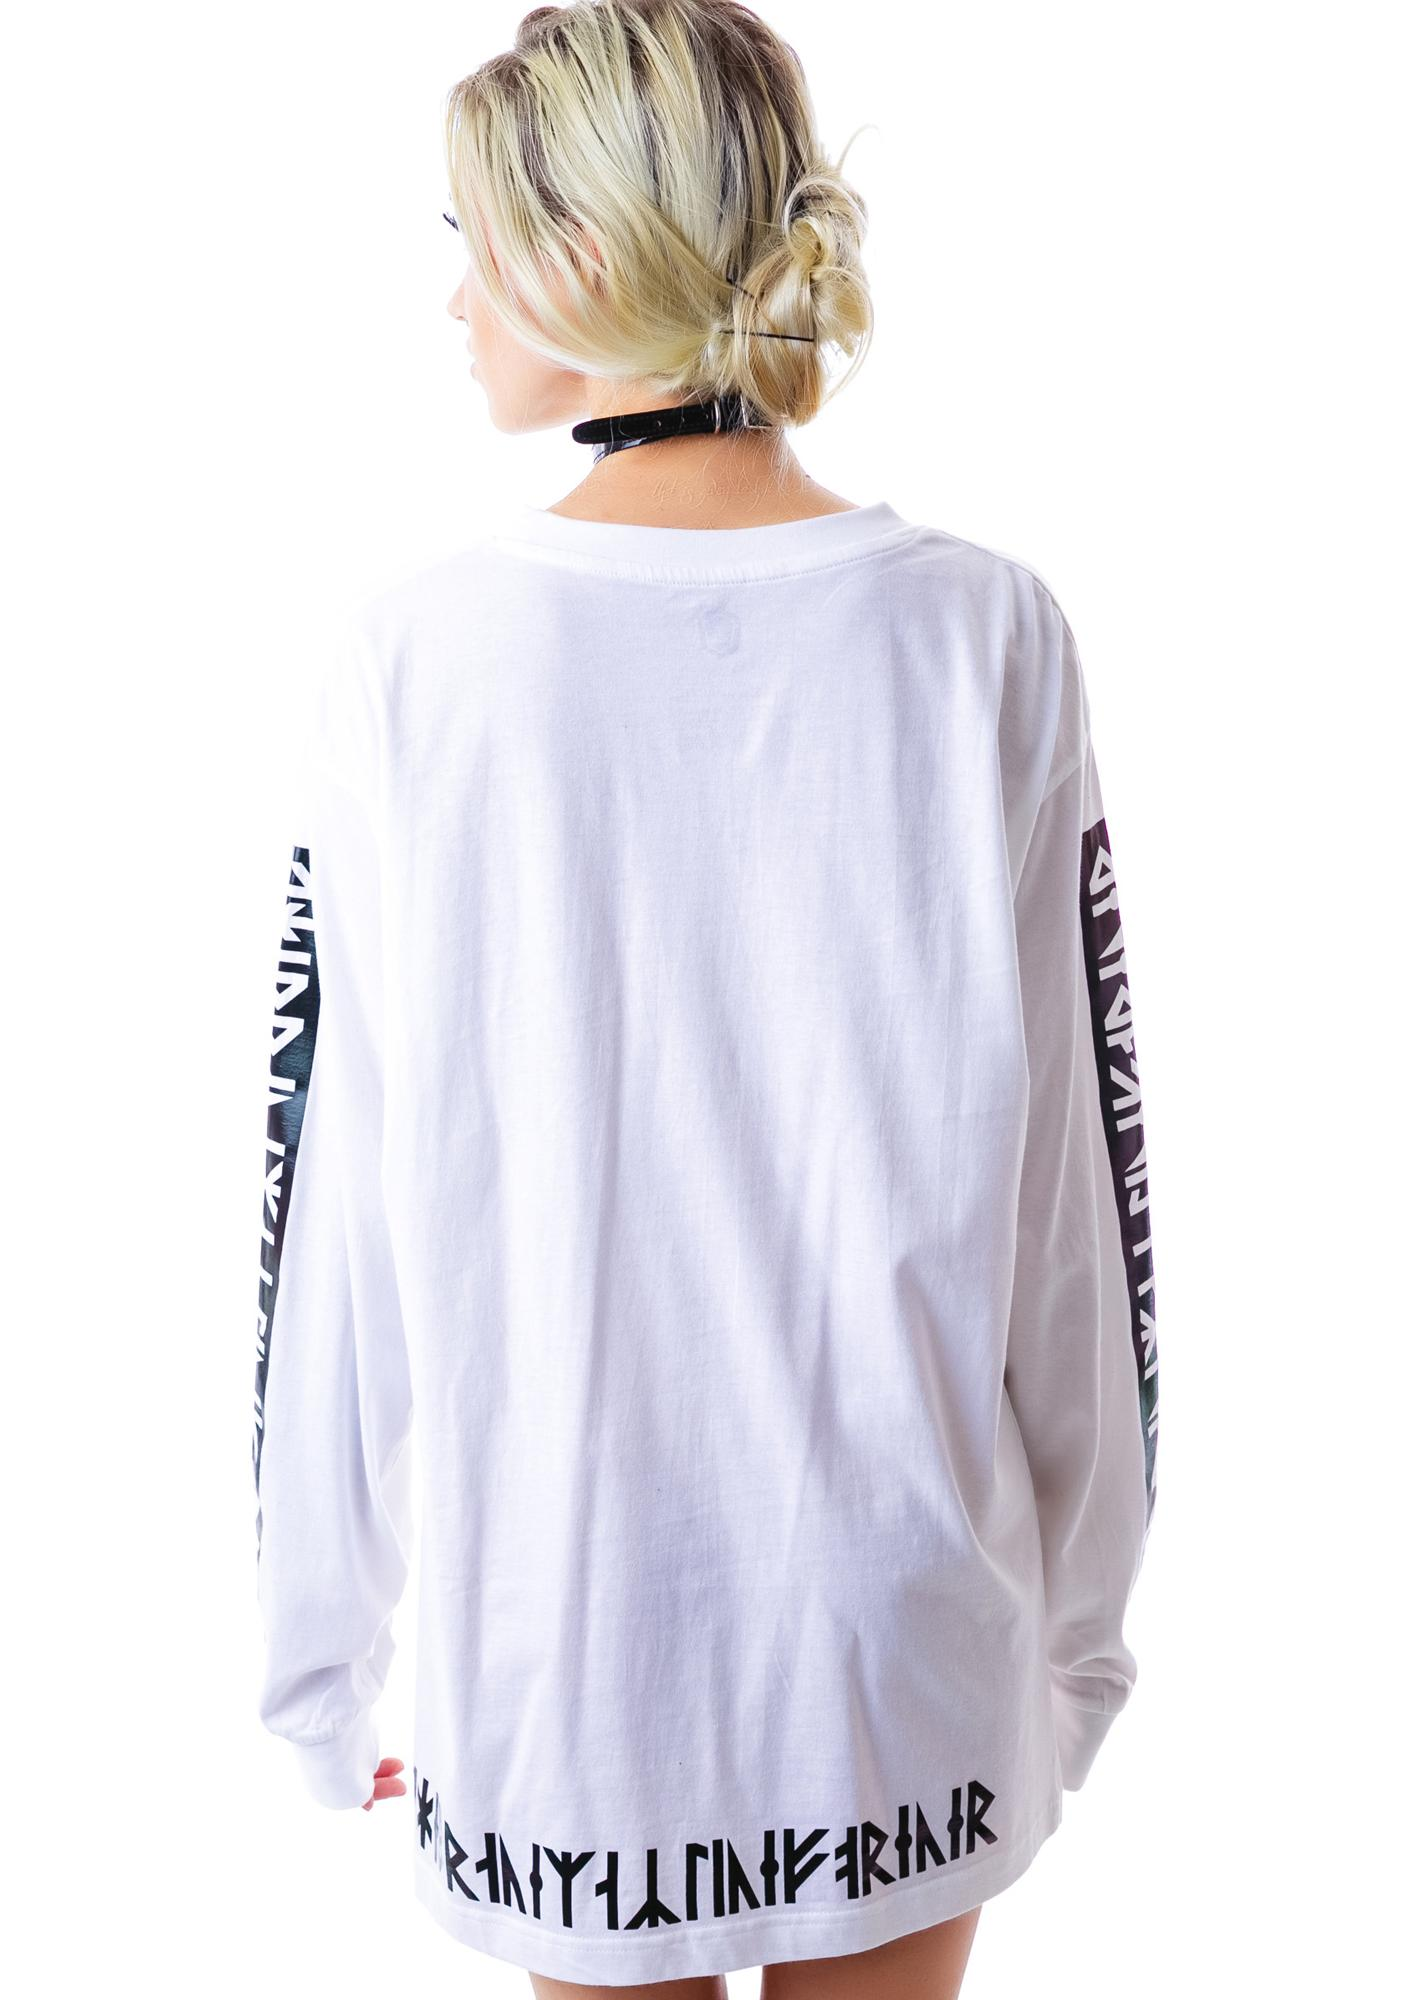 Long Clothing Brave Long Sleeve Tee